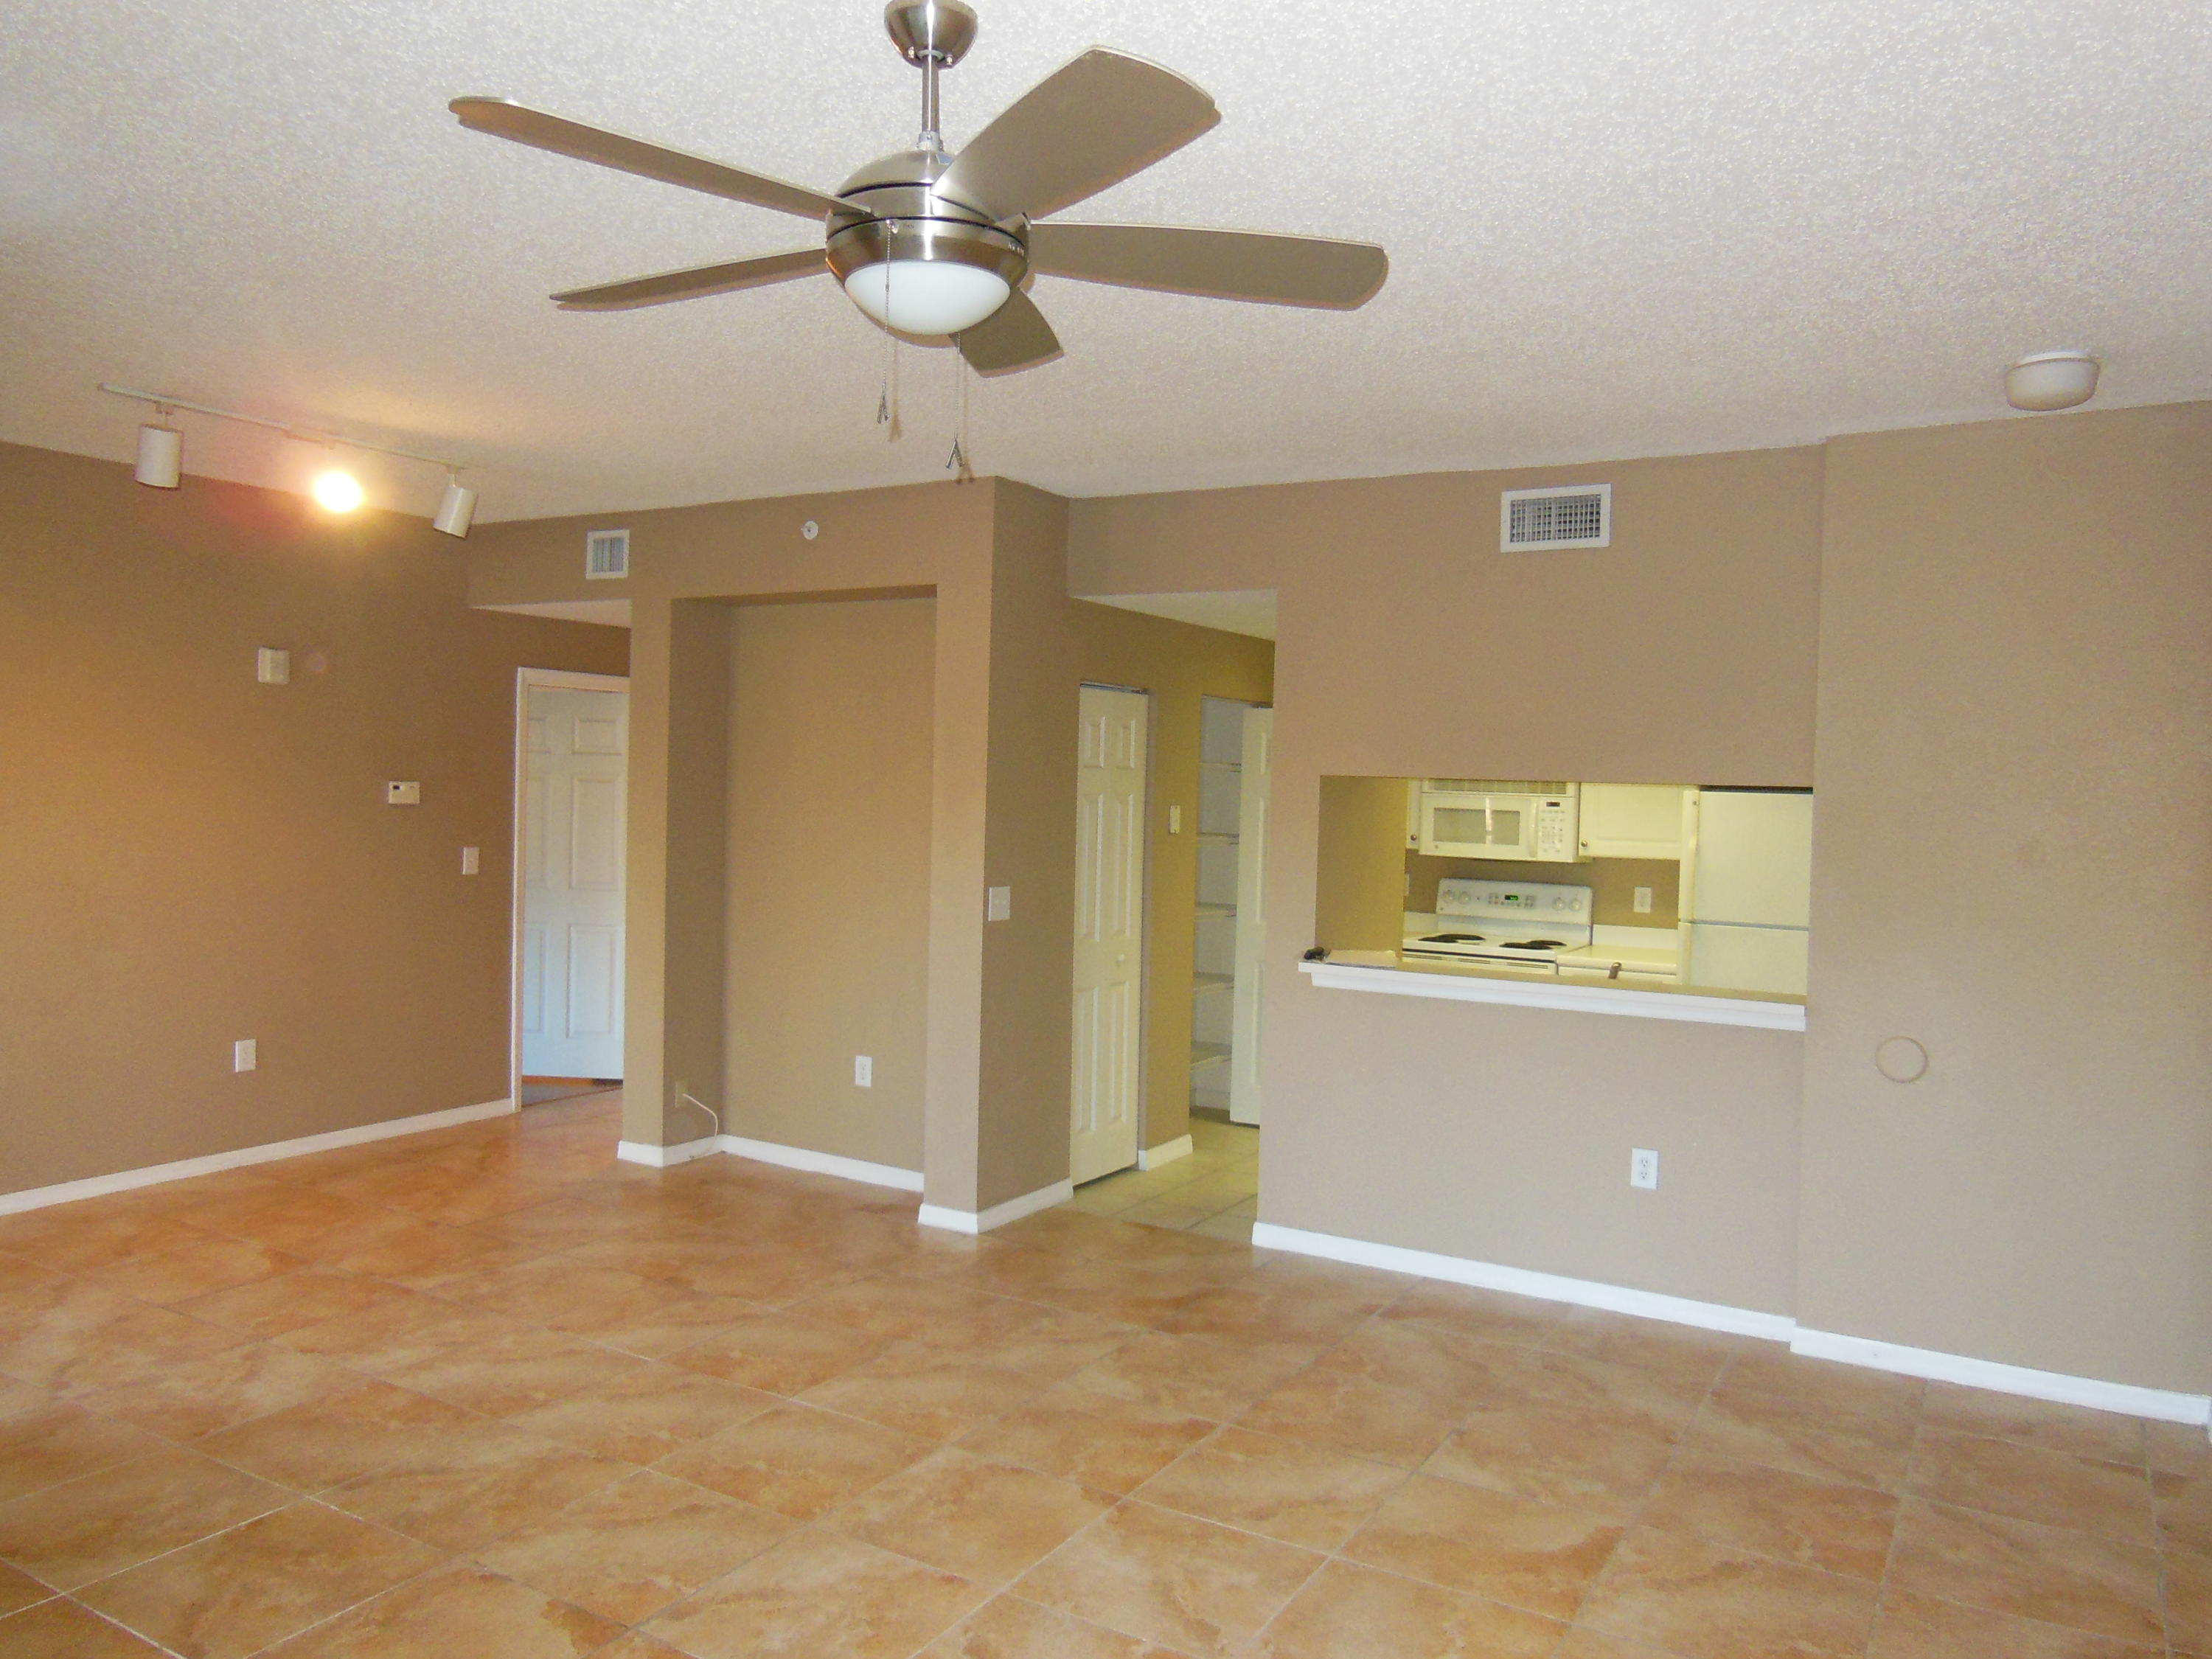 NICE AND CLEAN 1BR/1BTH CORNER UNIT WITH PRIVATE LOCATION. 2ND FLOOR. TILE IN LIVING ROOM AND PATIO, LAMINATE IN BEDROOM. WATER IS INCLUDED. PETS ARE WELCOME. 650 CR.SCORE FOR EACH TENANT BY HOA. GATED COMMUNITY ''SAN MATERA'' OFFERS BEAUTIFUL FULL AMENITIES: POOL,CLUB HOUSE,GYM,TENNIS COURTS. 5 MIN TO THE BEACH AND DOWNTOWN OF PALM BEACH GARDENS.